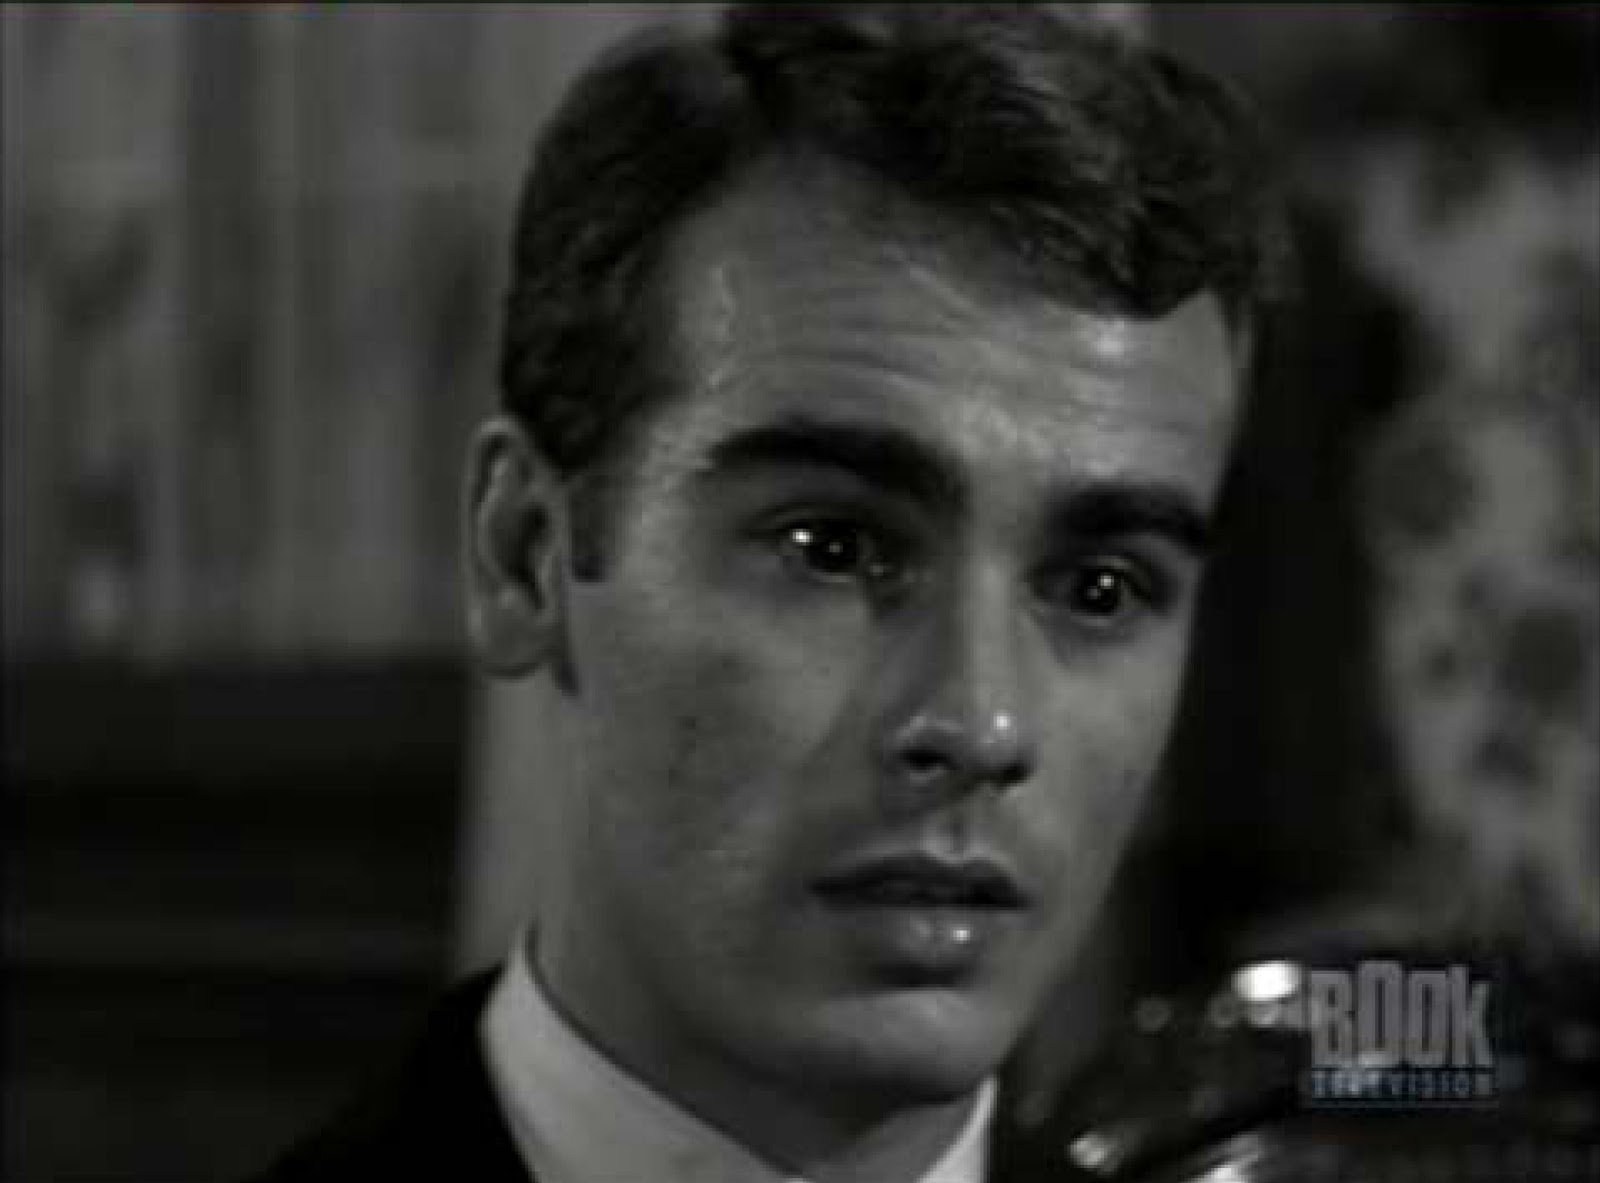 dean stockwell imdbdean stockwell 2016, dean stockwell stroke, dean stockwell death, dean stockwell wiki, dean stockwell paris texas, dean stockwell twitter, dean stockwell, dean stockwell imdb, dean stockwell dead, dean stockwell actor, dean stockwell blue velvet, dean stockwell 2015, dean stockwell columbo, dean stockwell quantum leap, dean stockwell young, dean stockwell twilight zone, dean stockwell art, dean stockwell kim, dean stockwell films, dean stockwell anchors aweigh